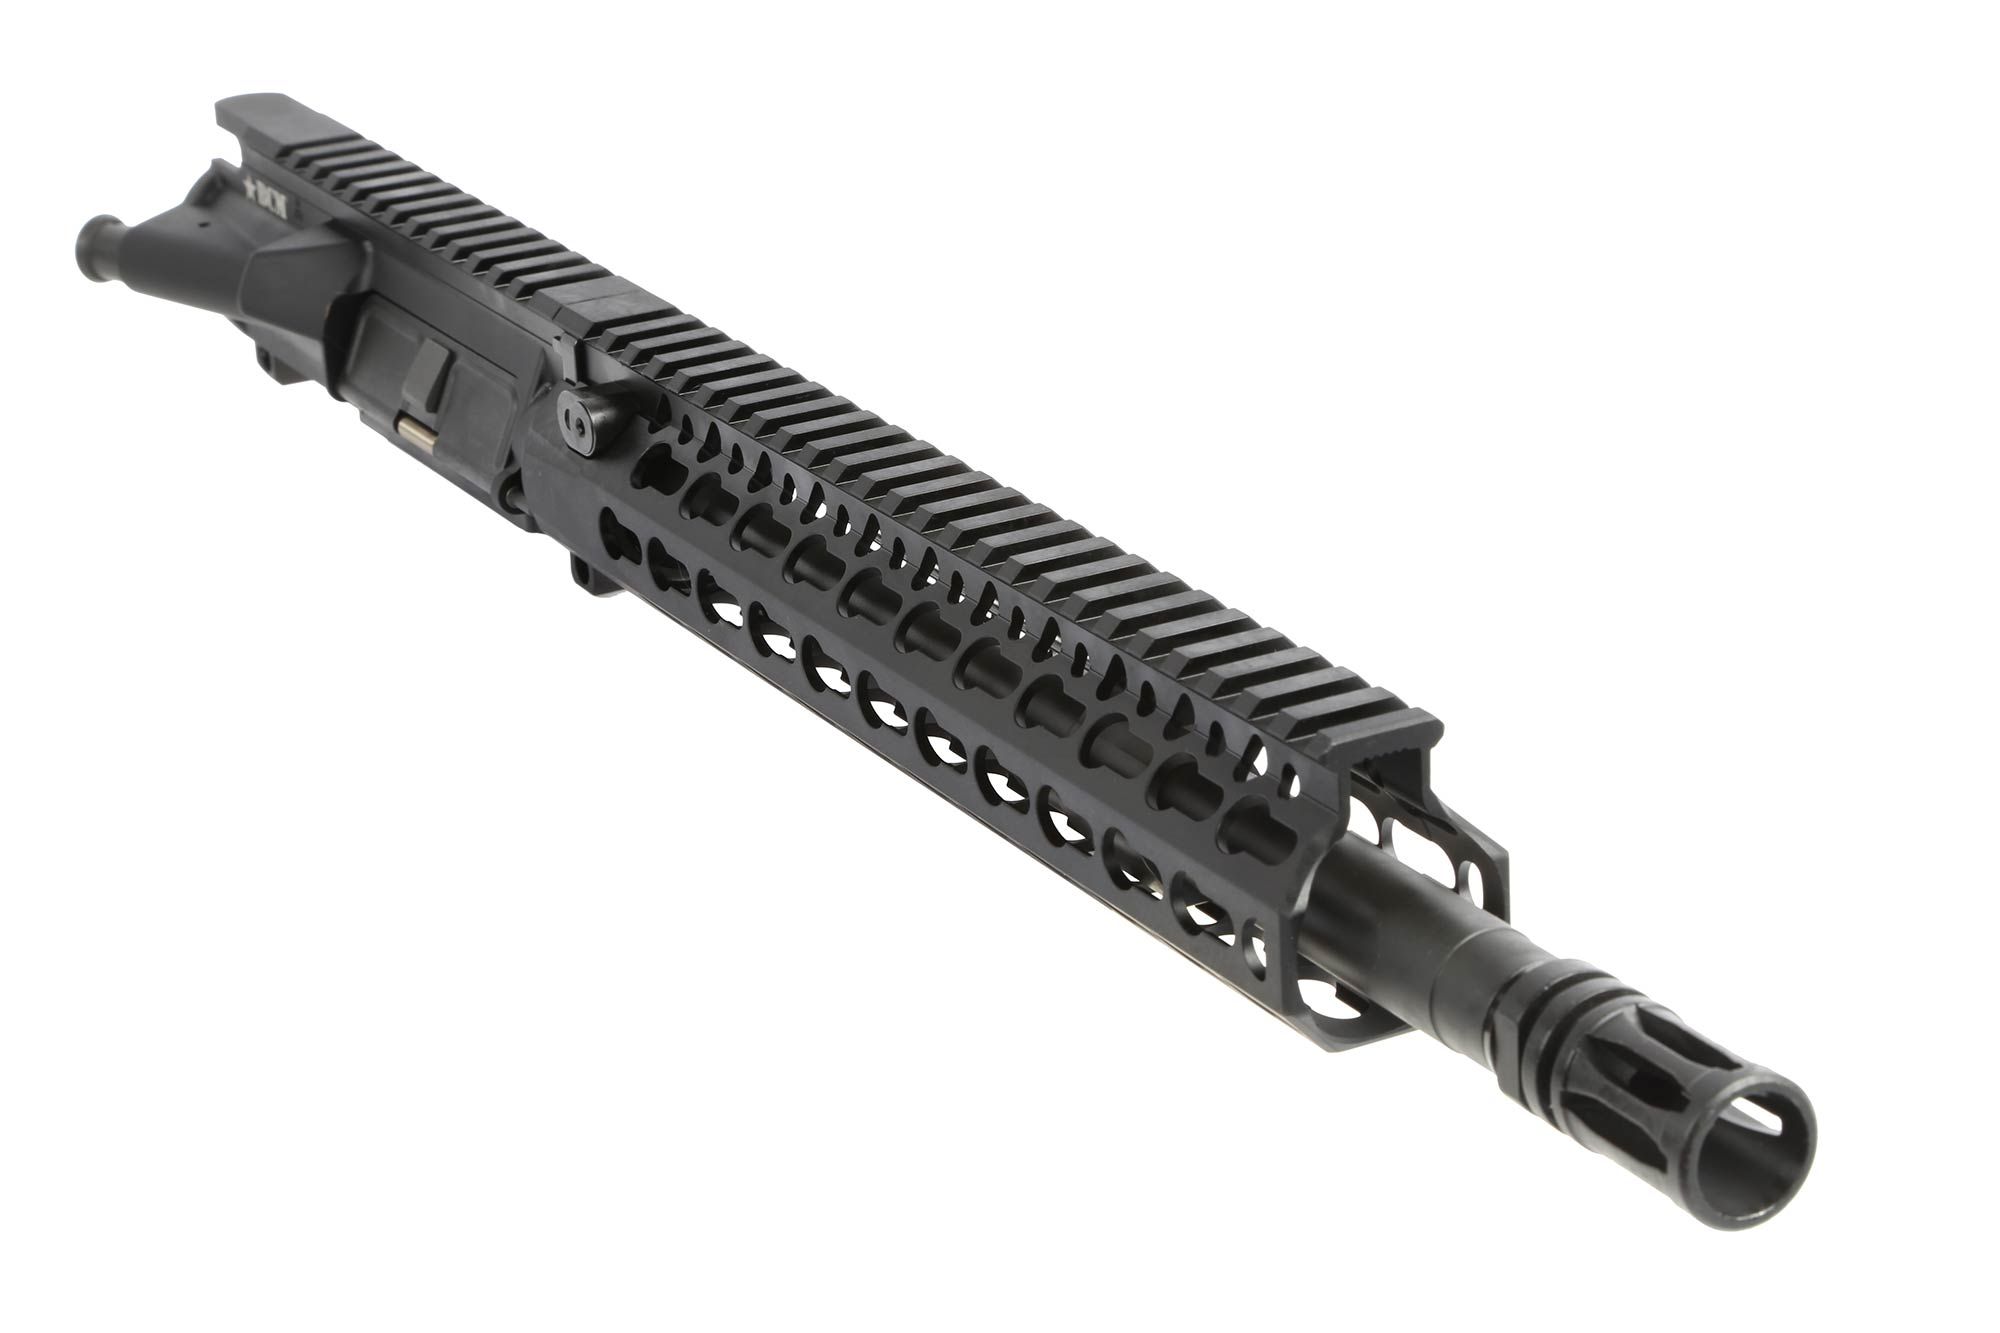 The BCM AR15 barreled upper receiver 12.5 inch government profile barrel is made from machine gun steel